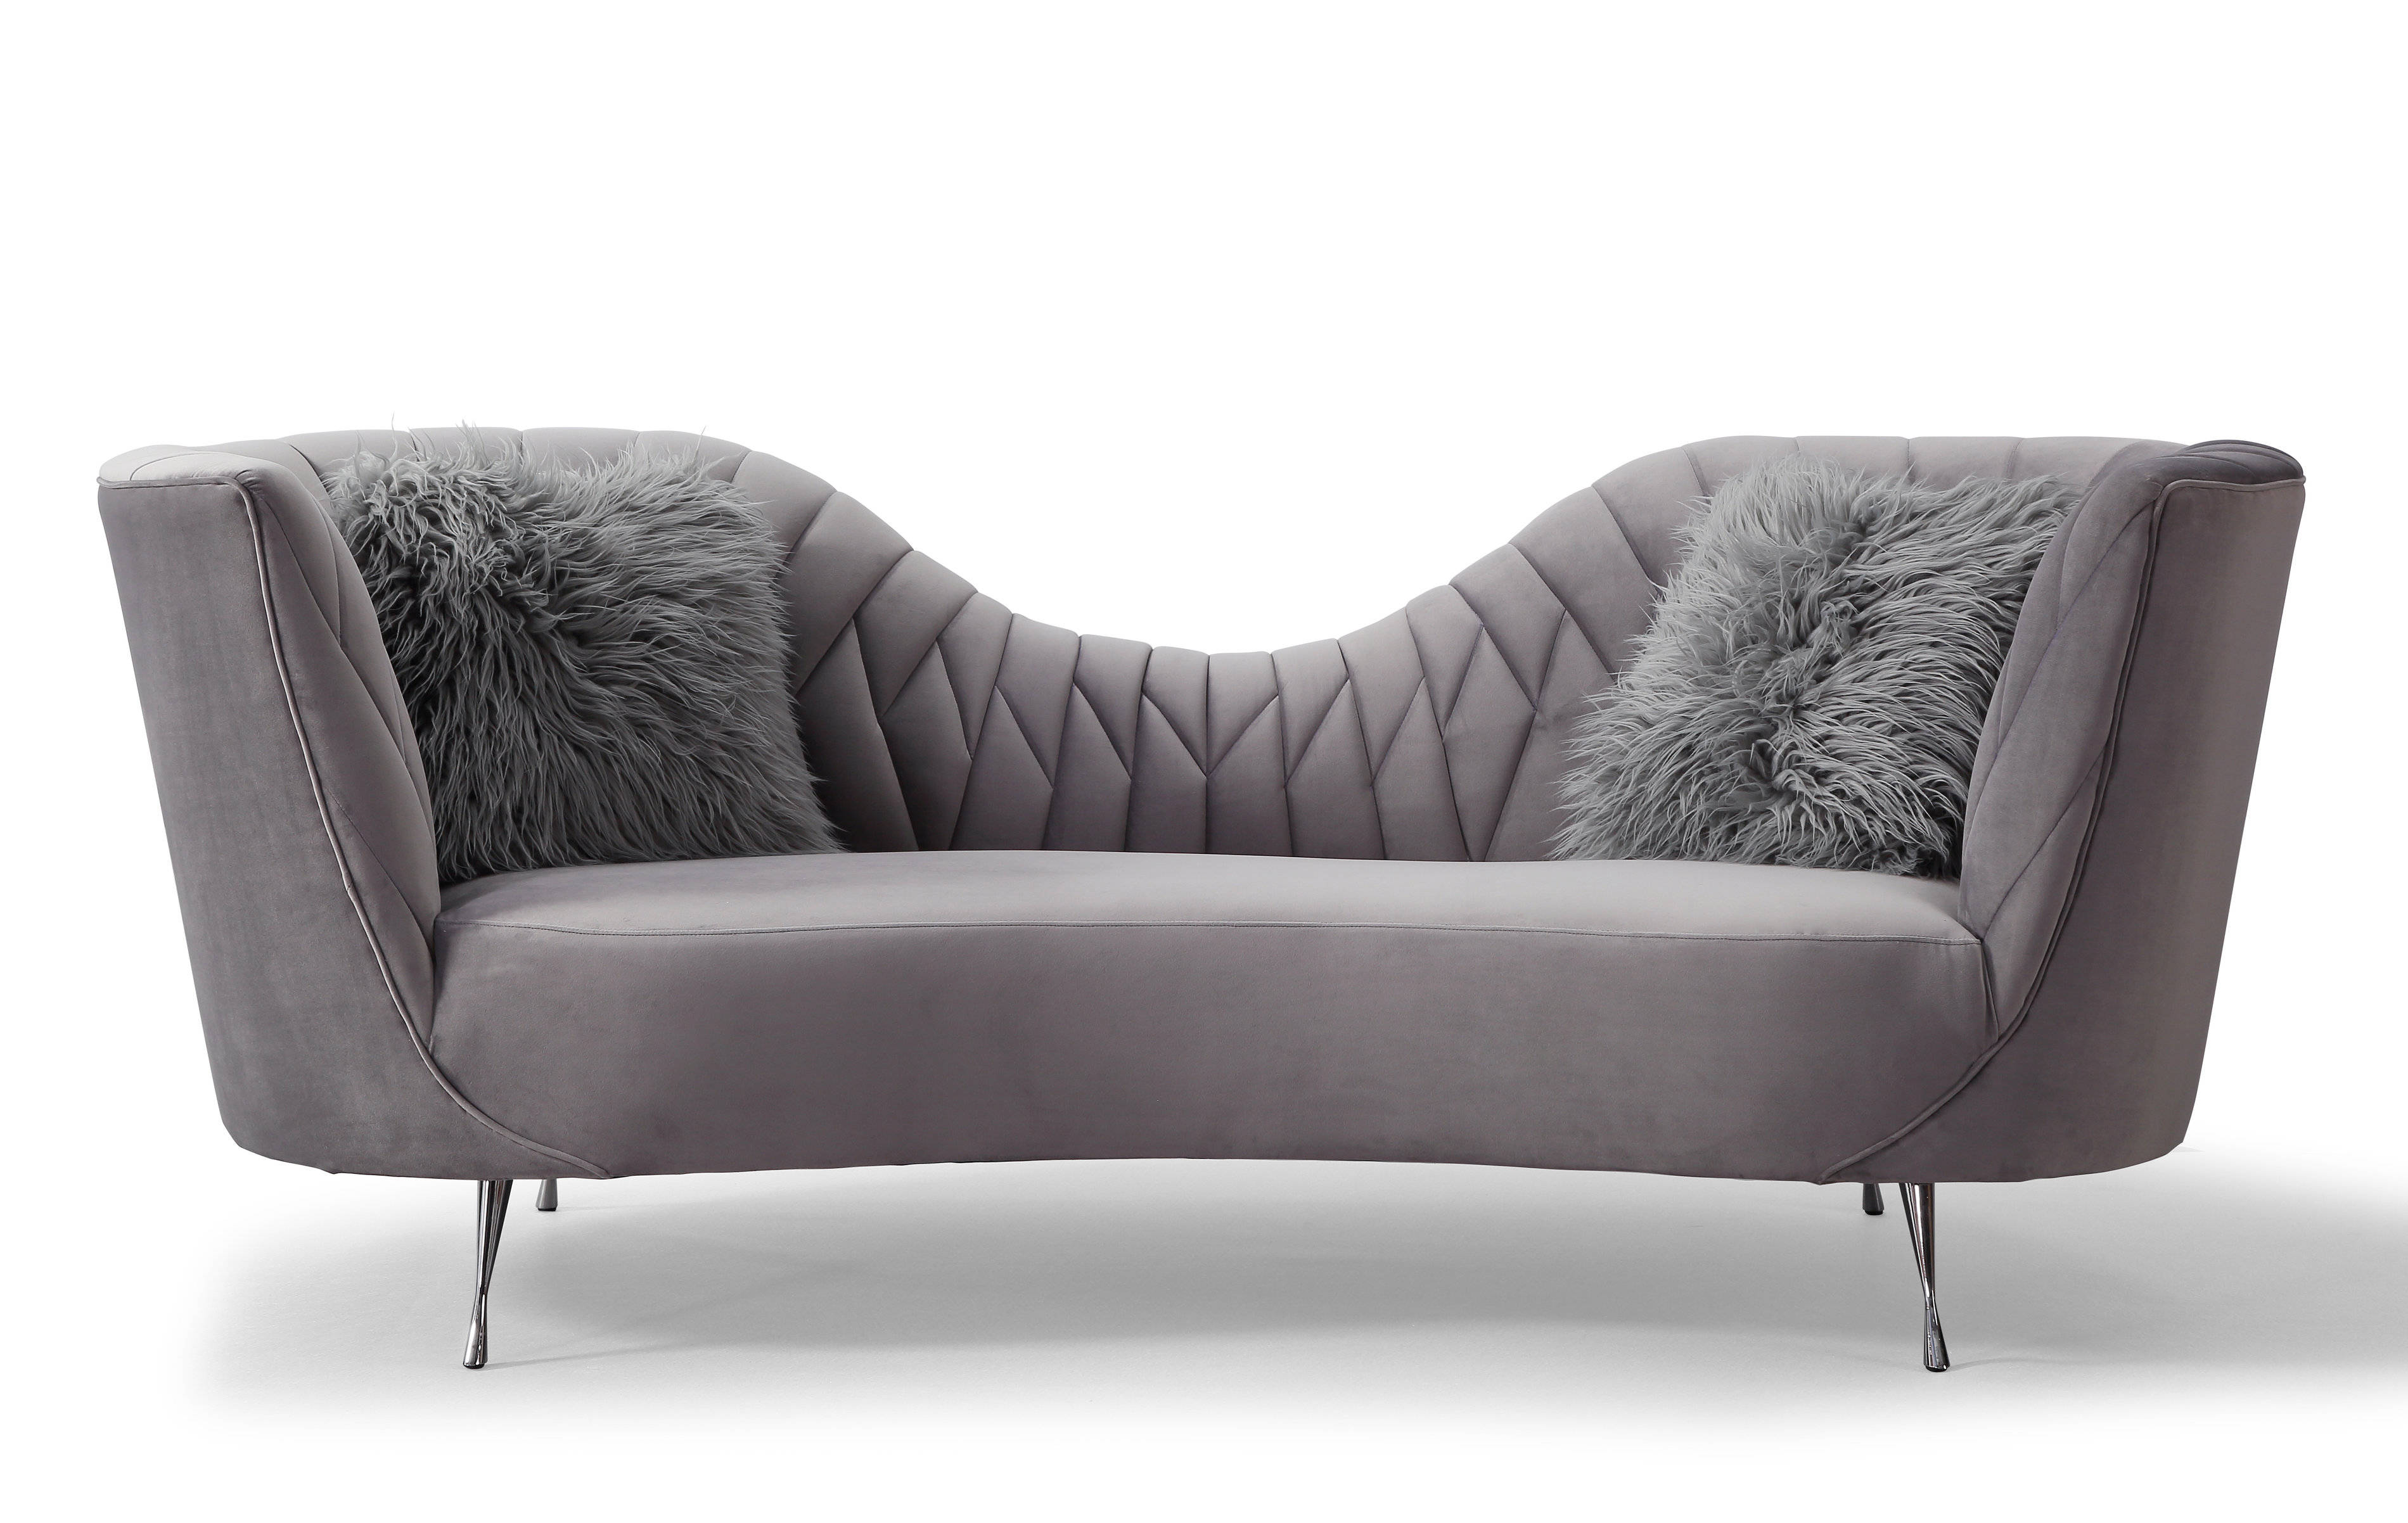 Tov Furniture Eva Grey Velvet Sofa The Classy Home